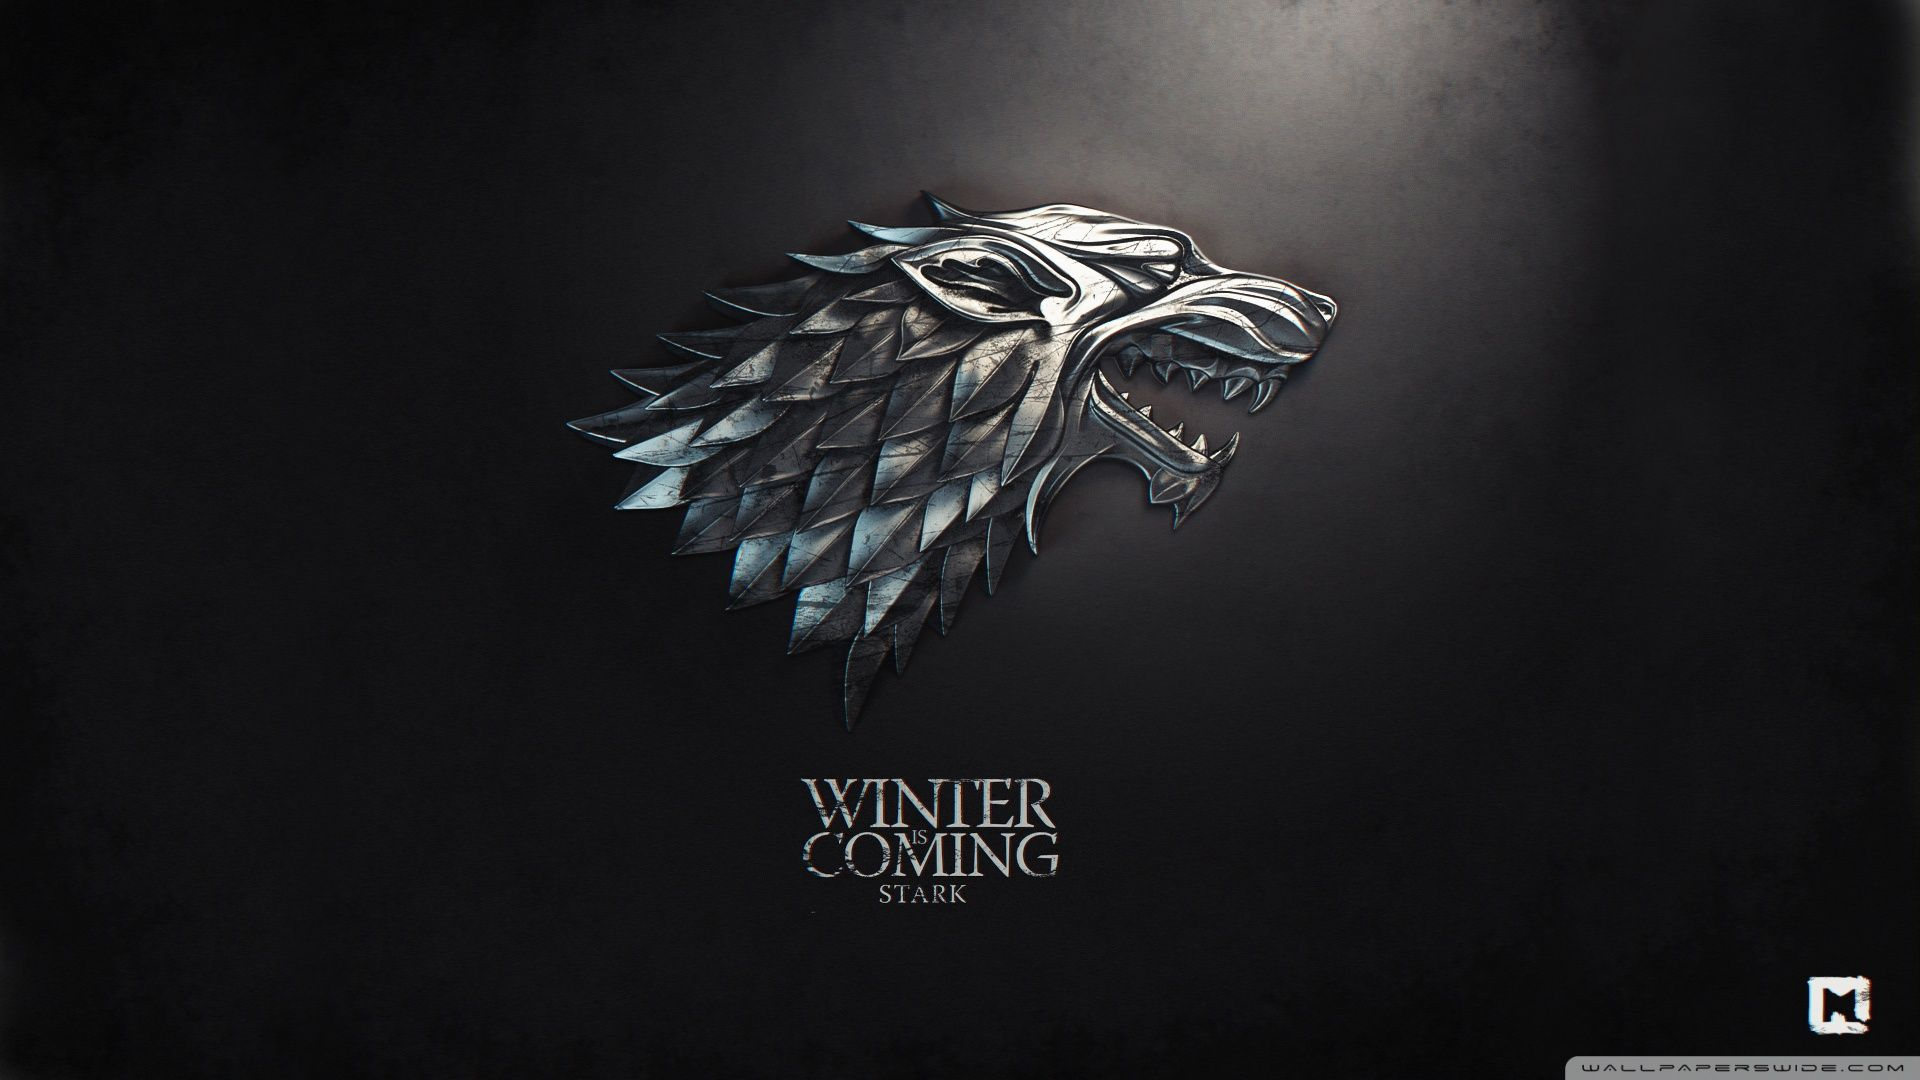 Game Of Thrones Hd Wallpapers And Backgrounds Wallpaper Pc Wallpaper Hd Wallpaper Keren